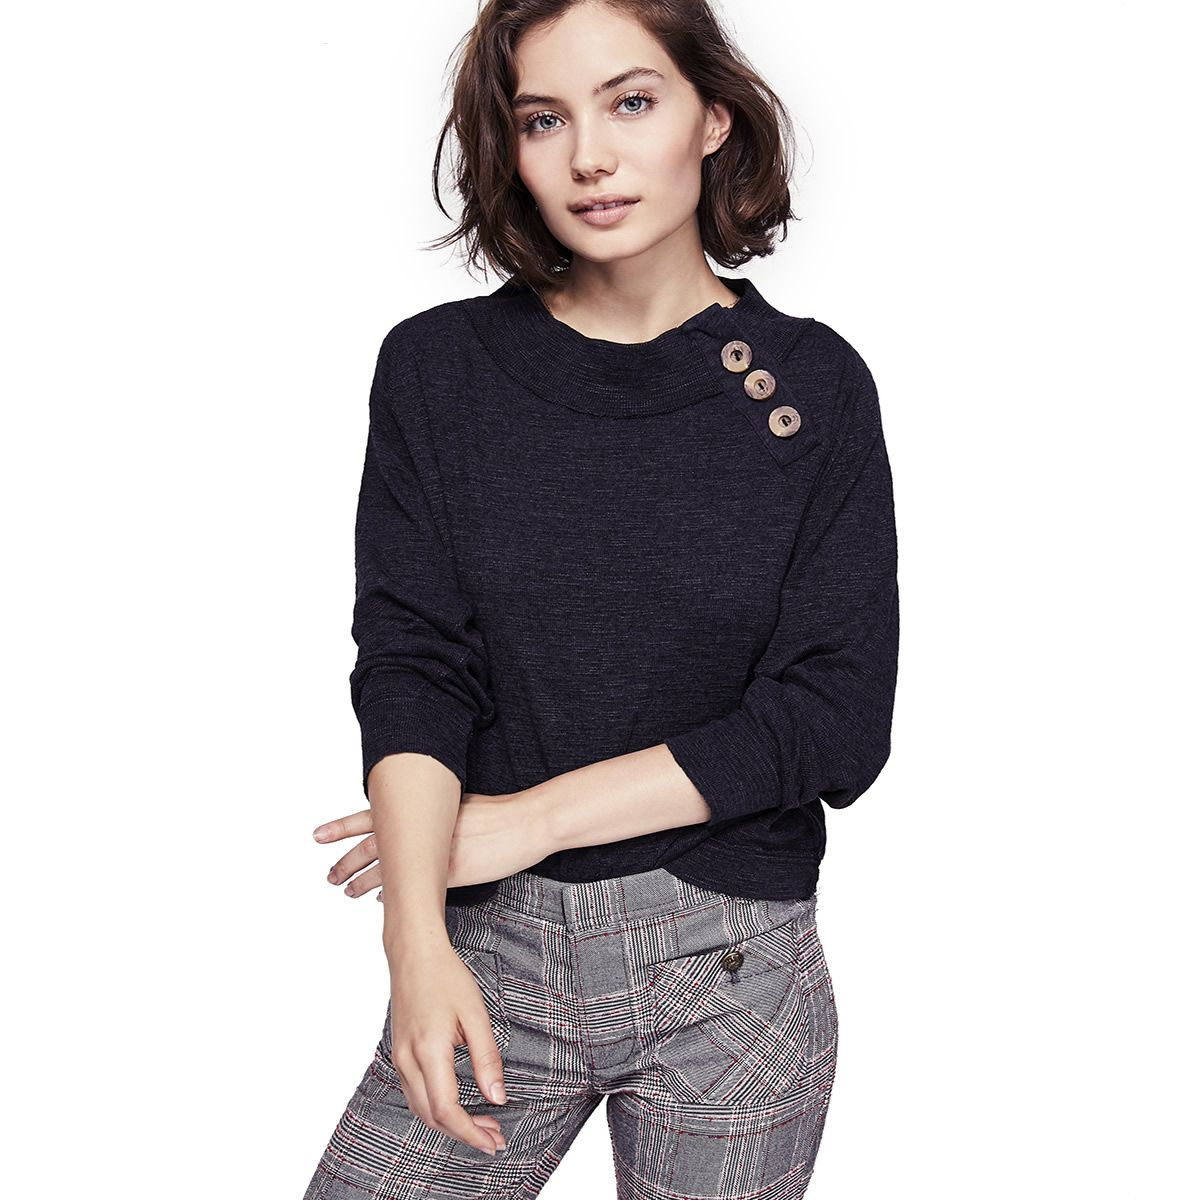 b2ffe6f44 Free People Womens Tops - Macy's